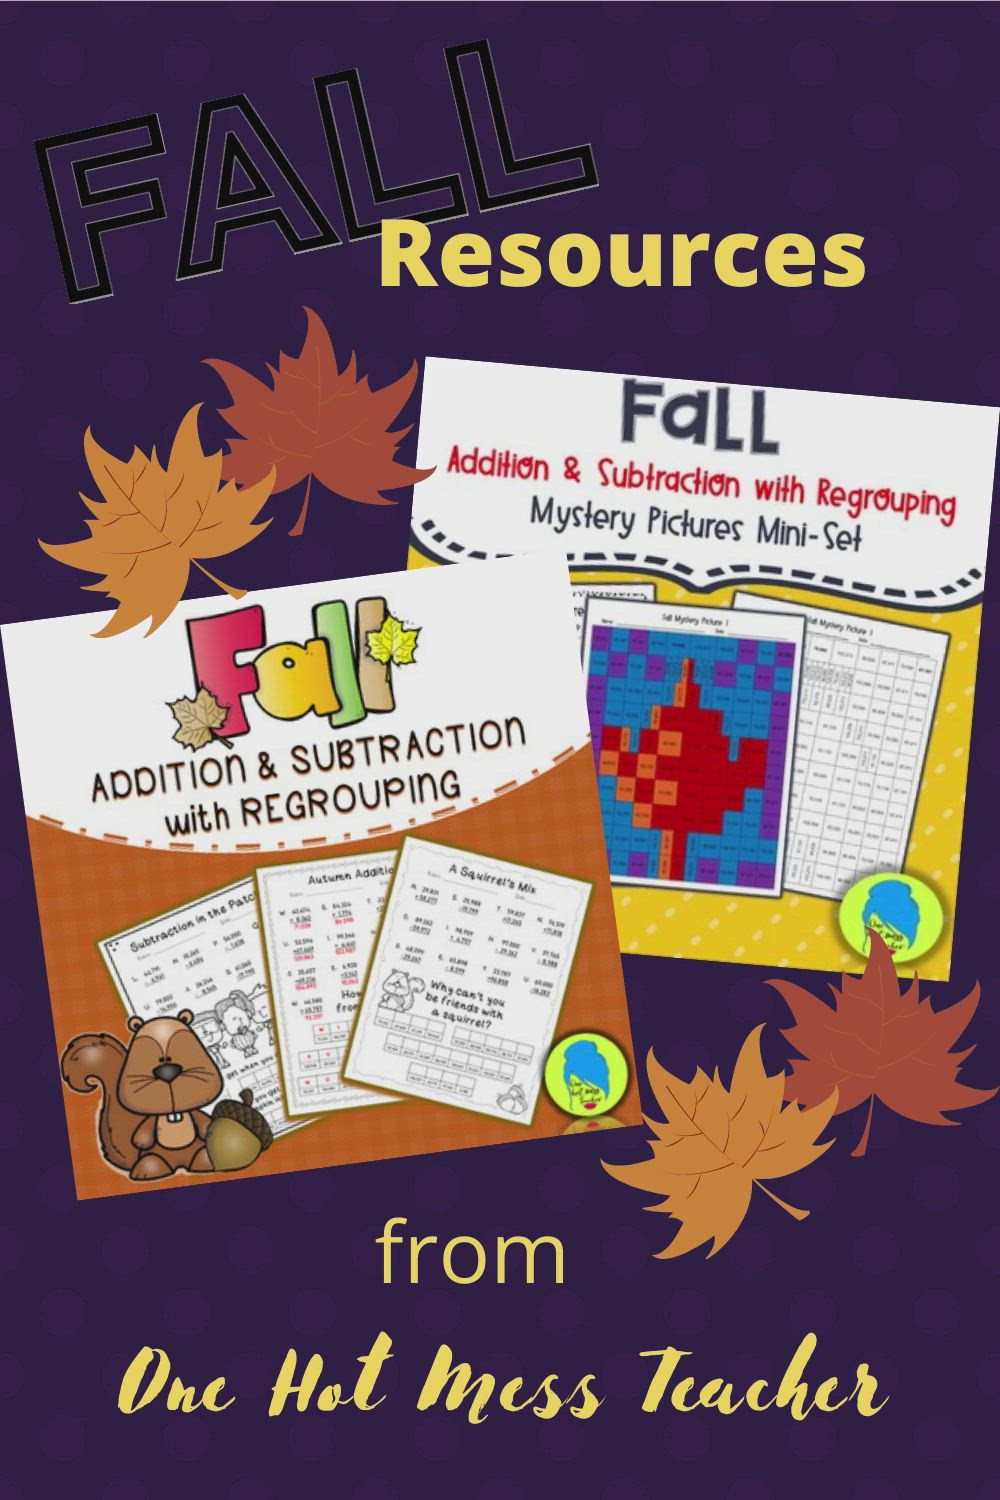 Addition And Subtraction With Regrouping From One Hot Mess Teacher Video Math Projects Math Activities Math Resources Math videos addition and subtraction